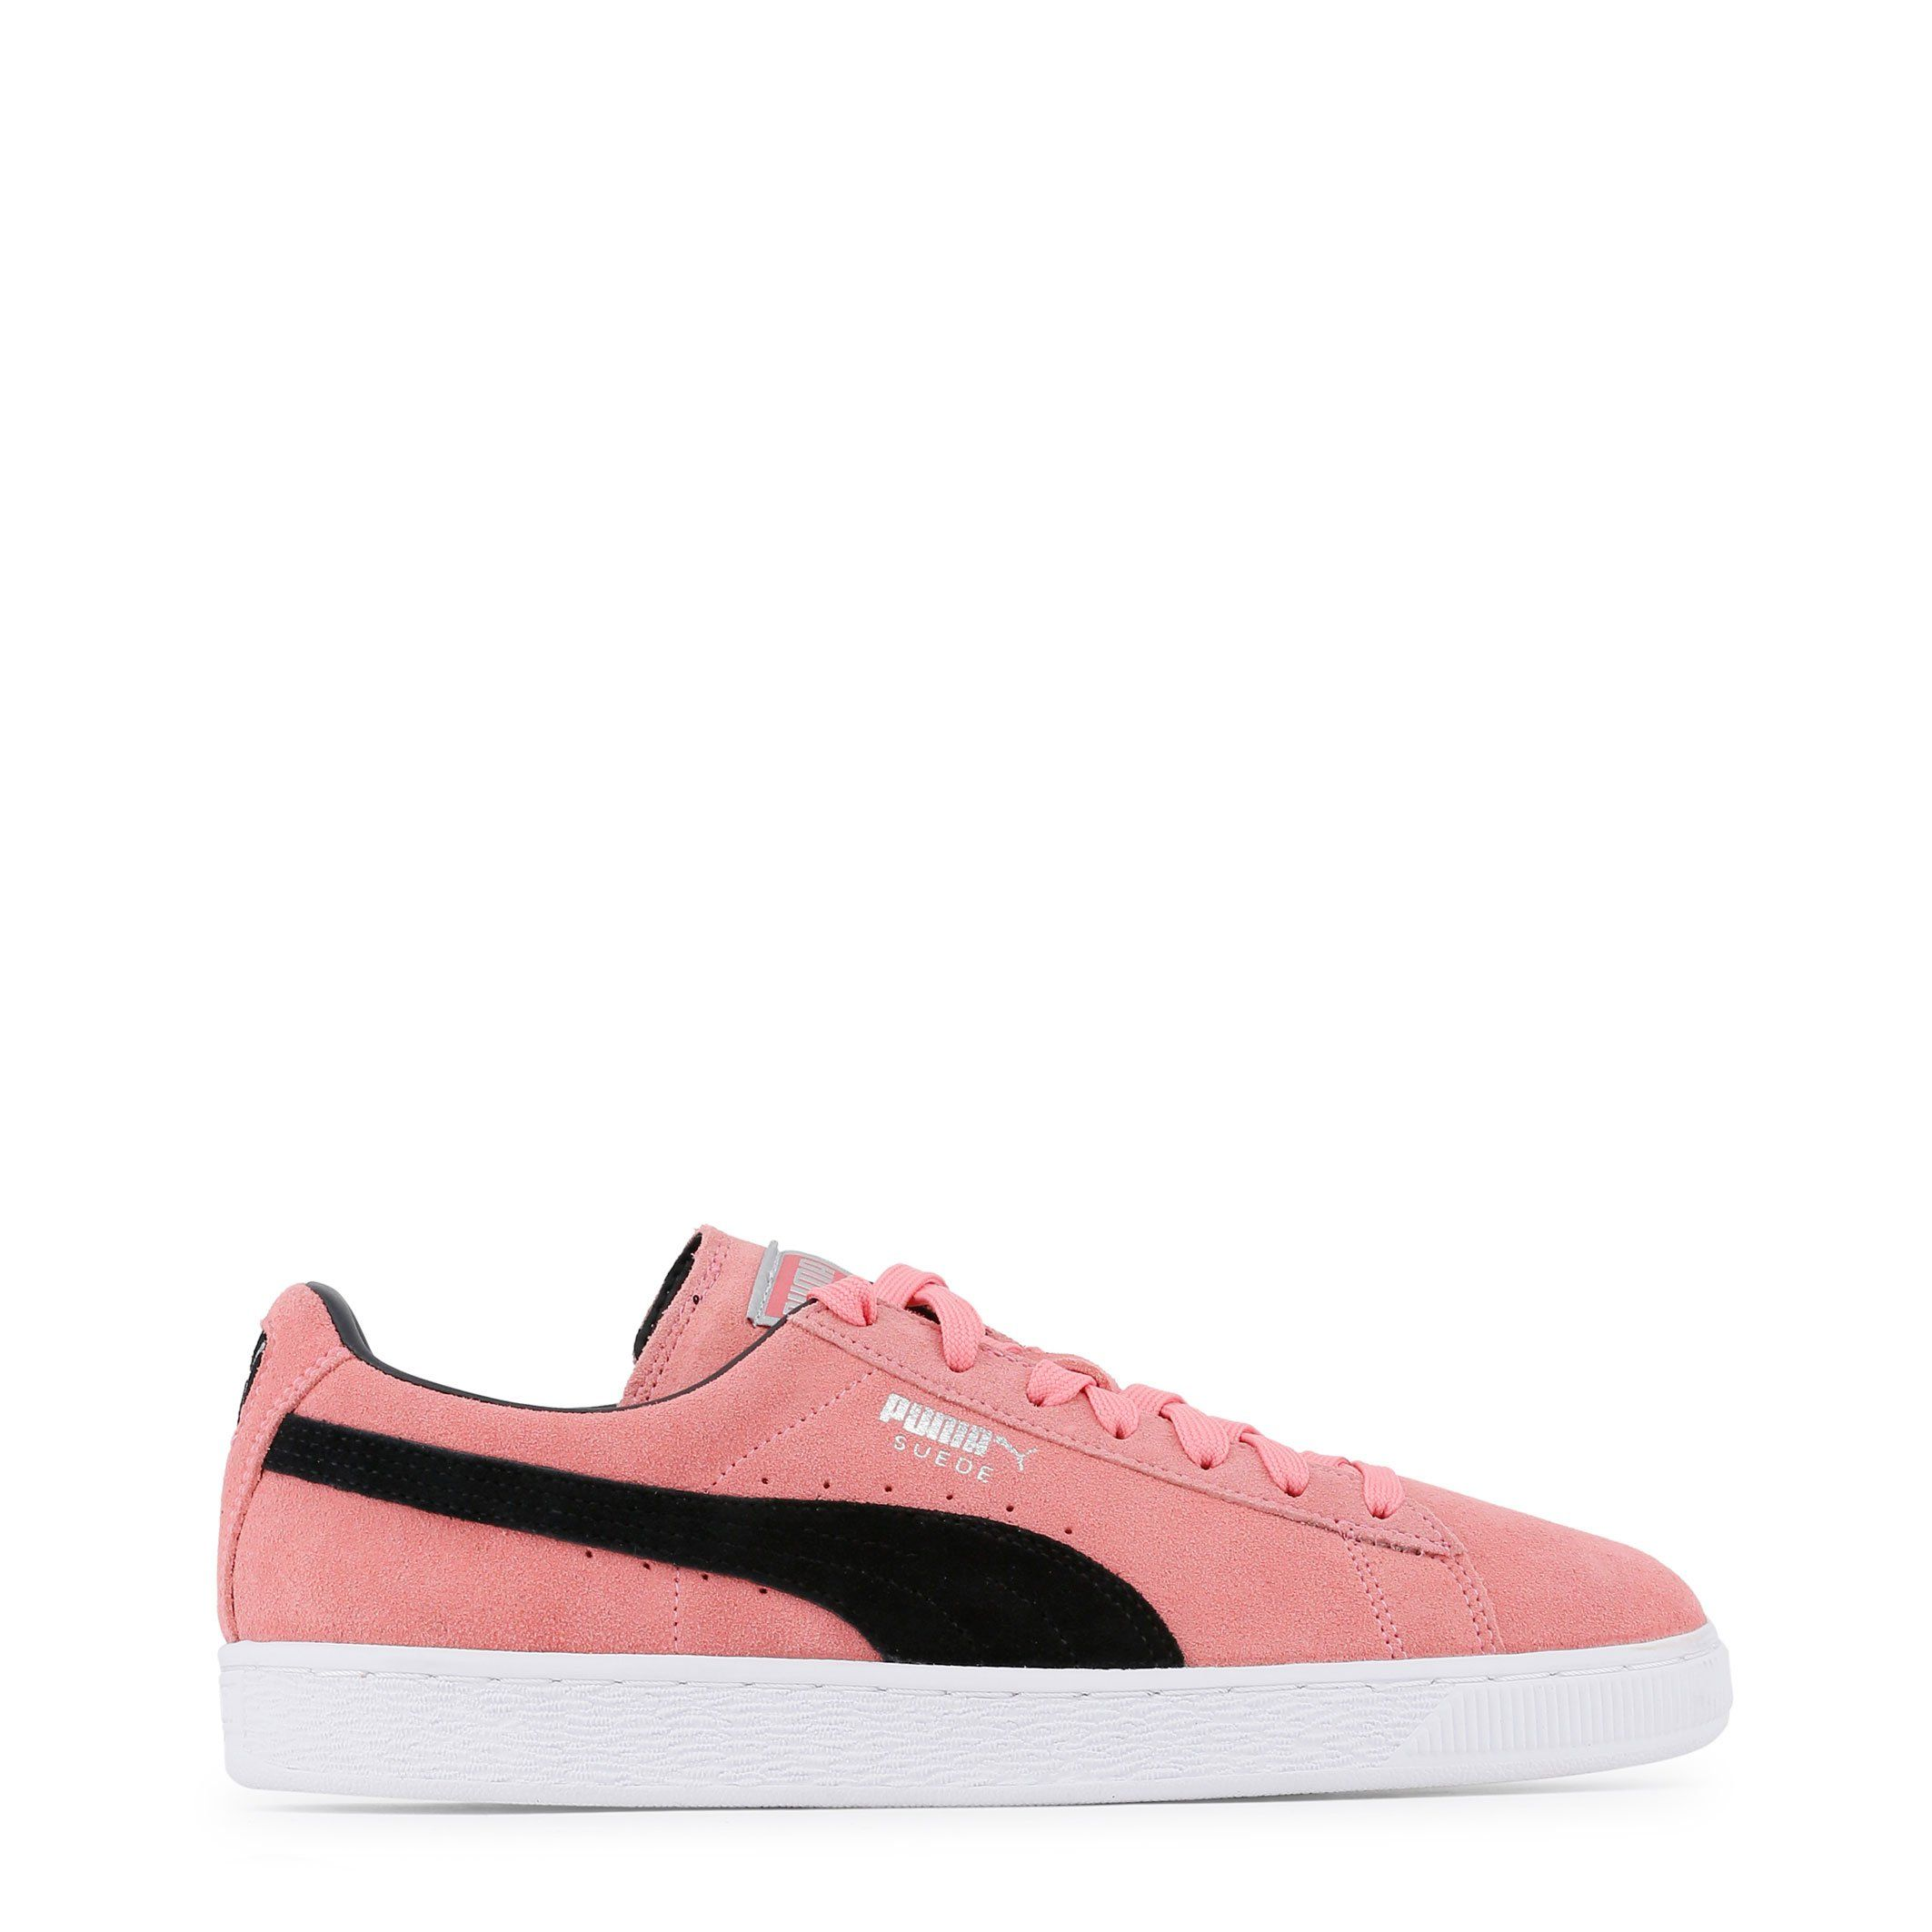 check out 26413 ffc26 Puma 363242 Men Suede Sneakers Pink